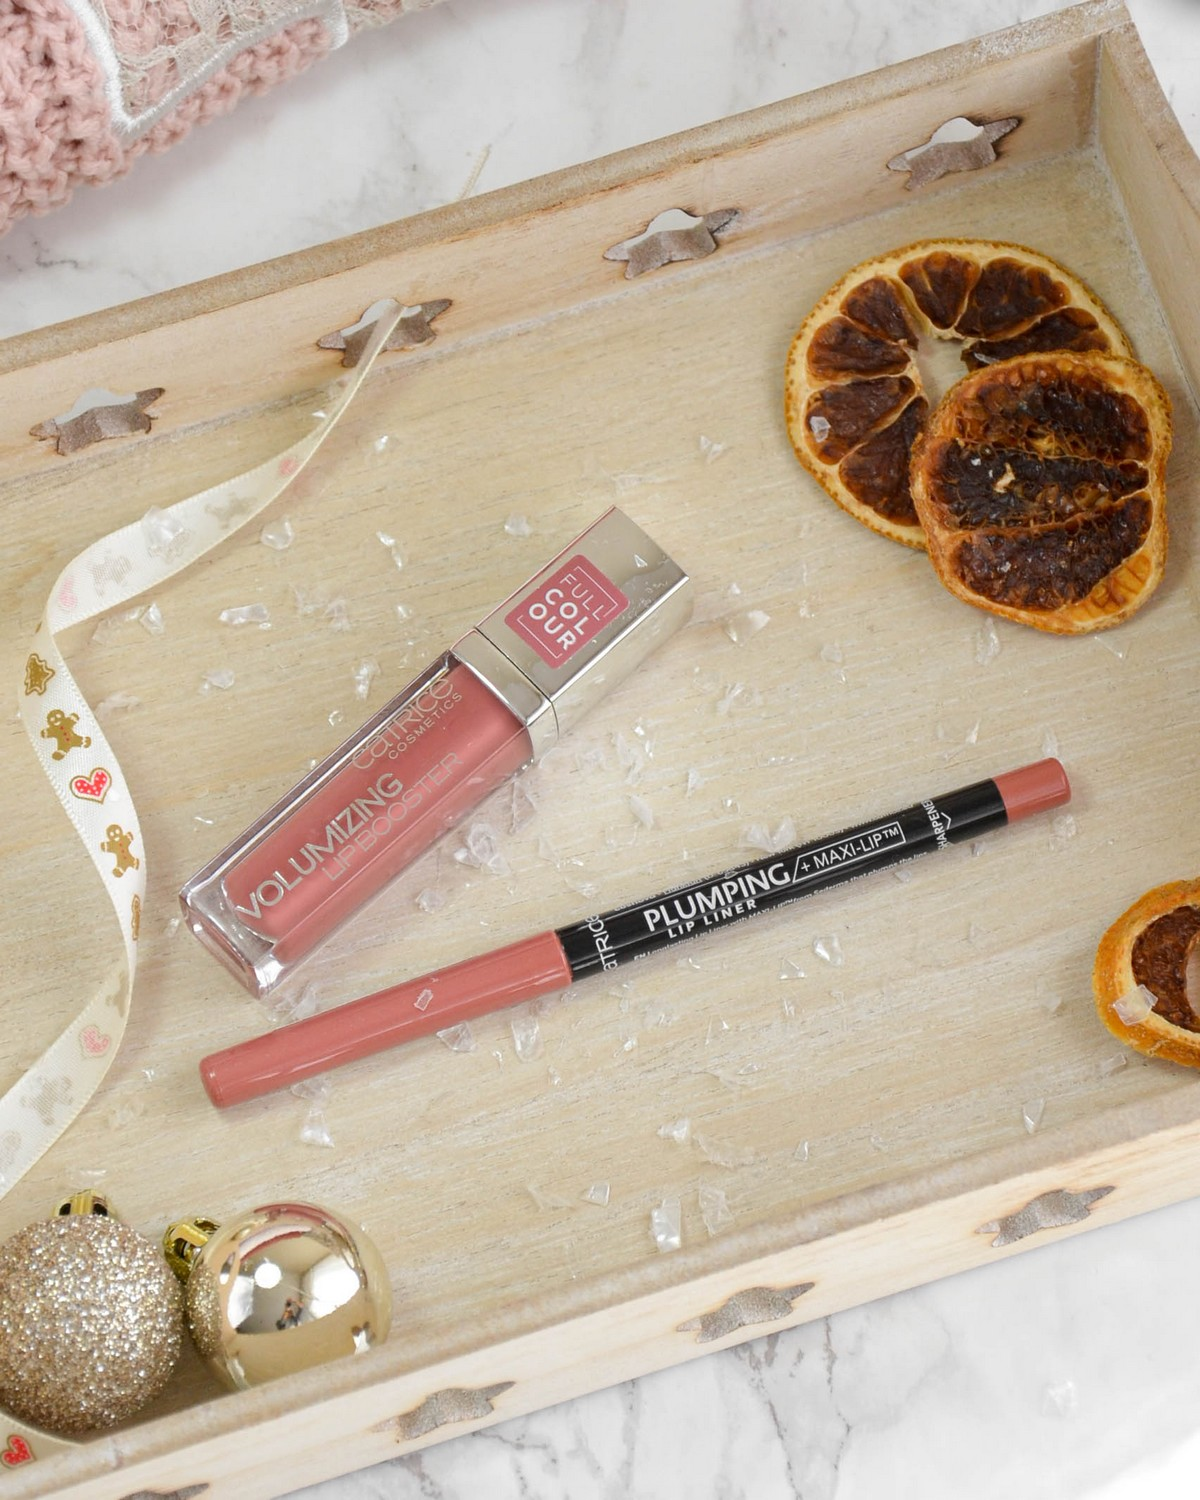 Catrice New Lip Products (Volumizing Lip Booster and Plumping Lip Liner)